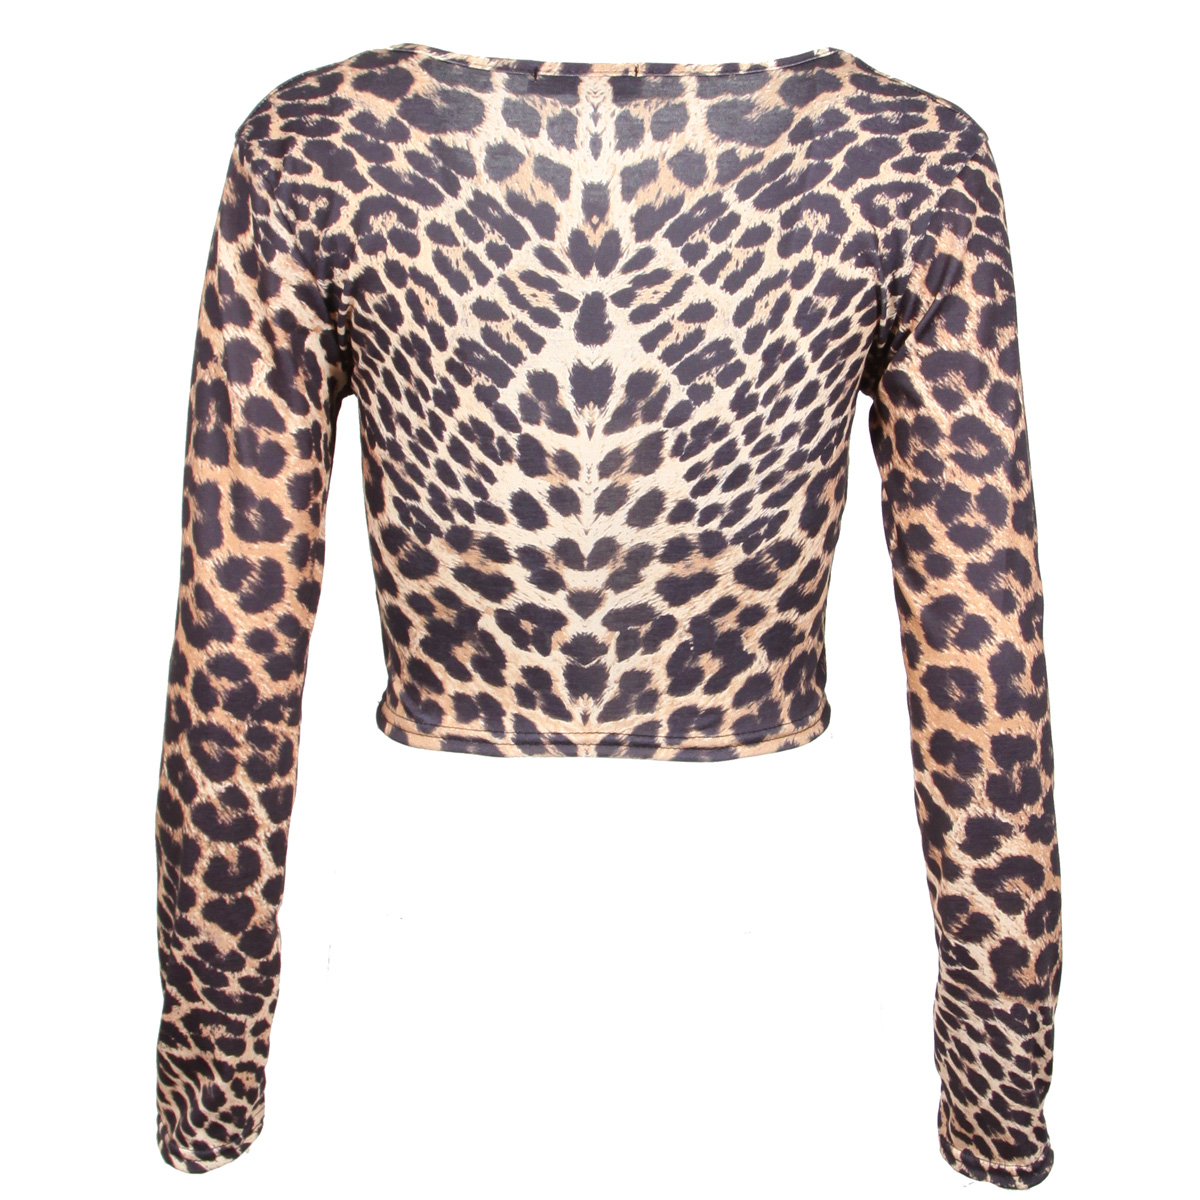 ... WOMENS LEOPARD ANIMAL PRINT CROP CROPPED TOP LONG SLEEVE CREW NECK